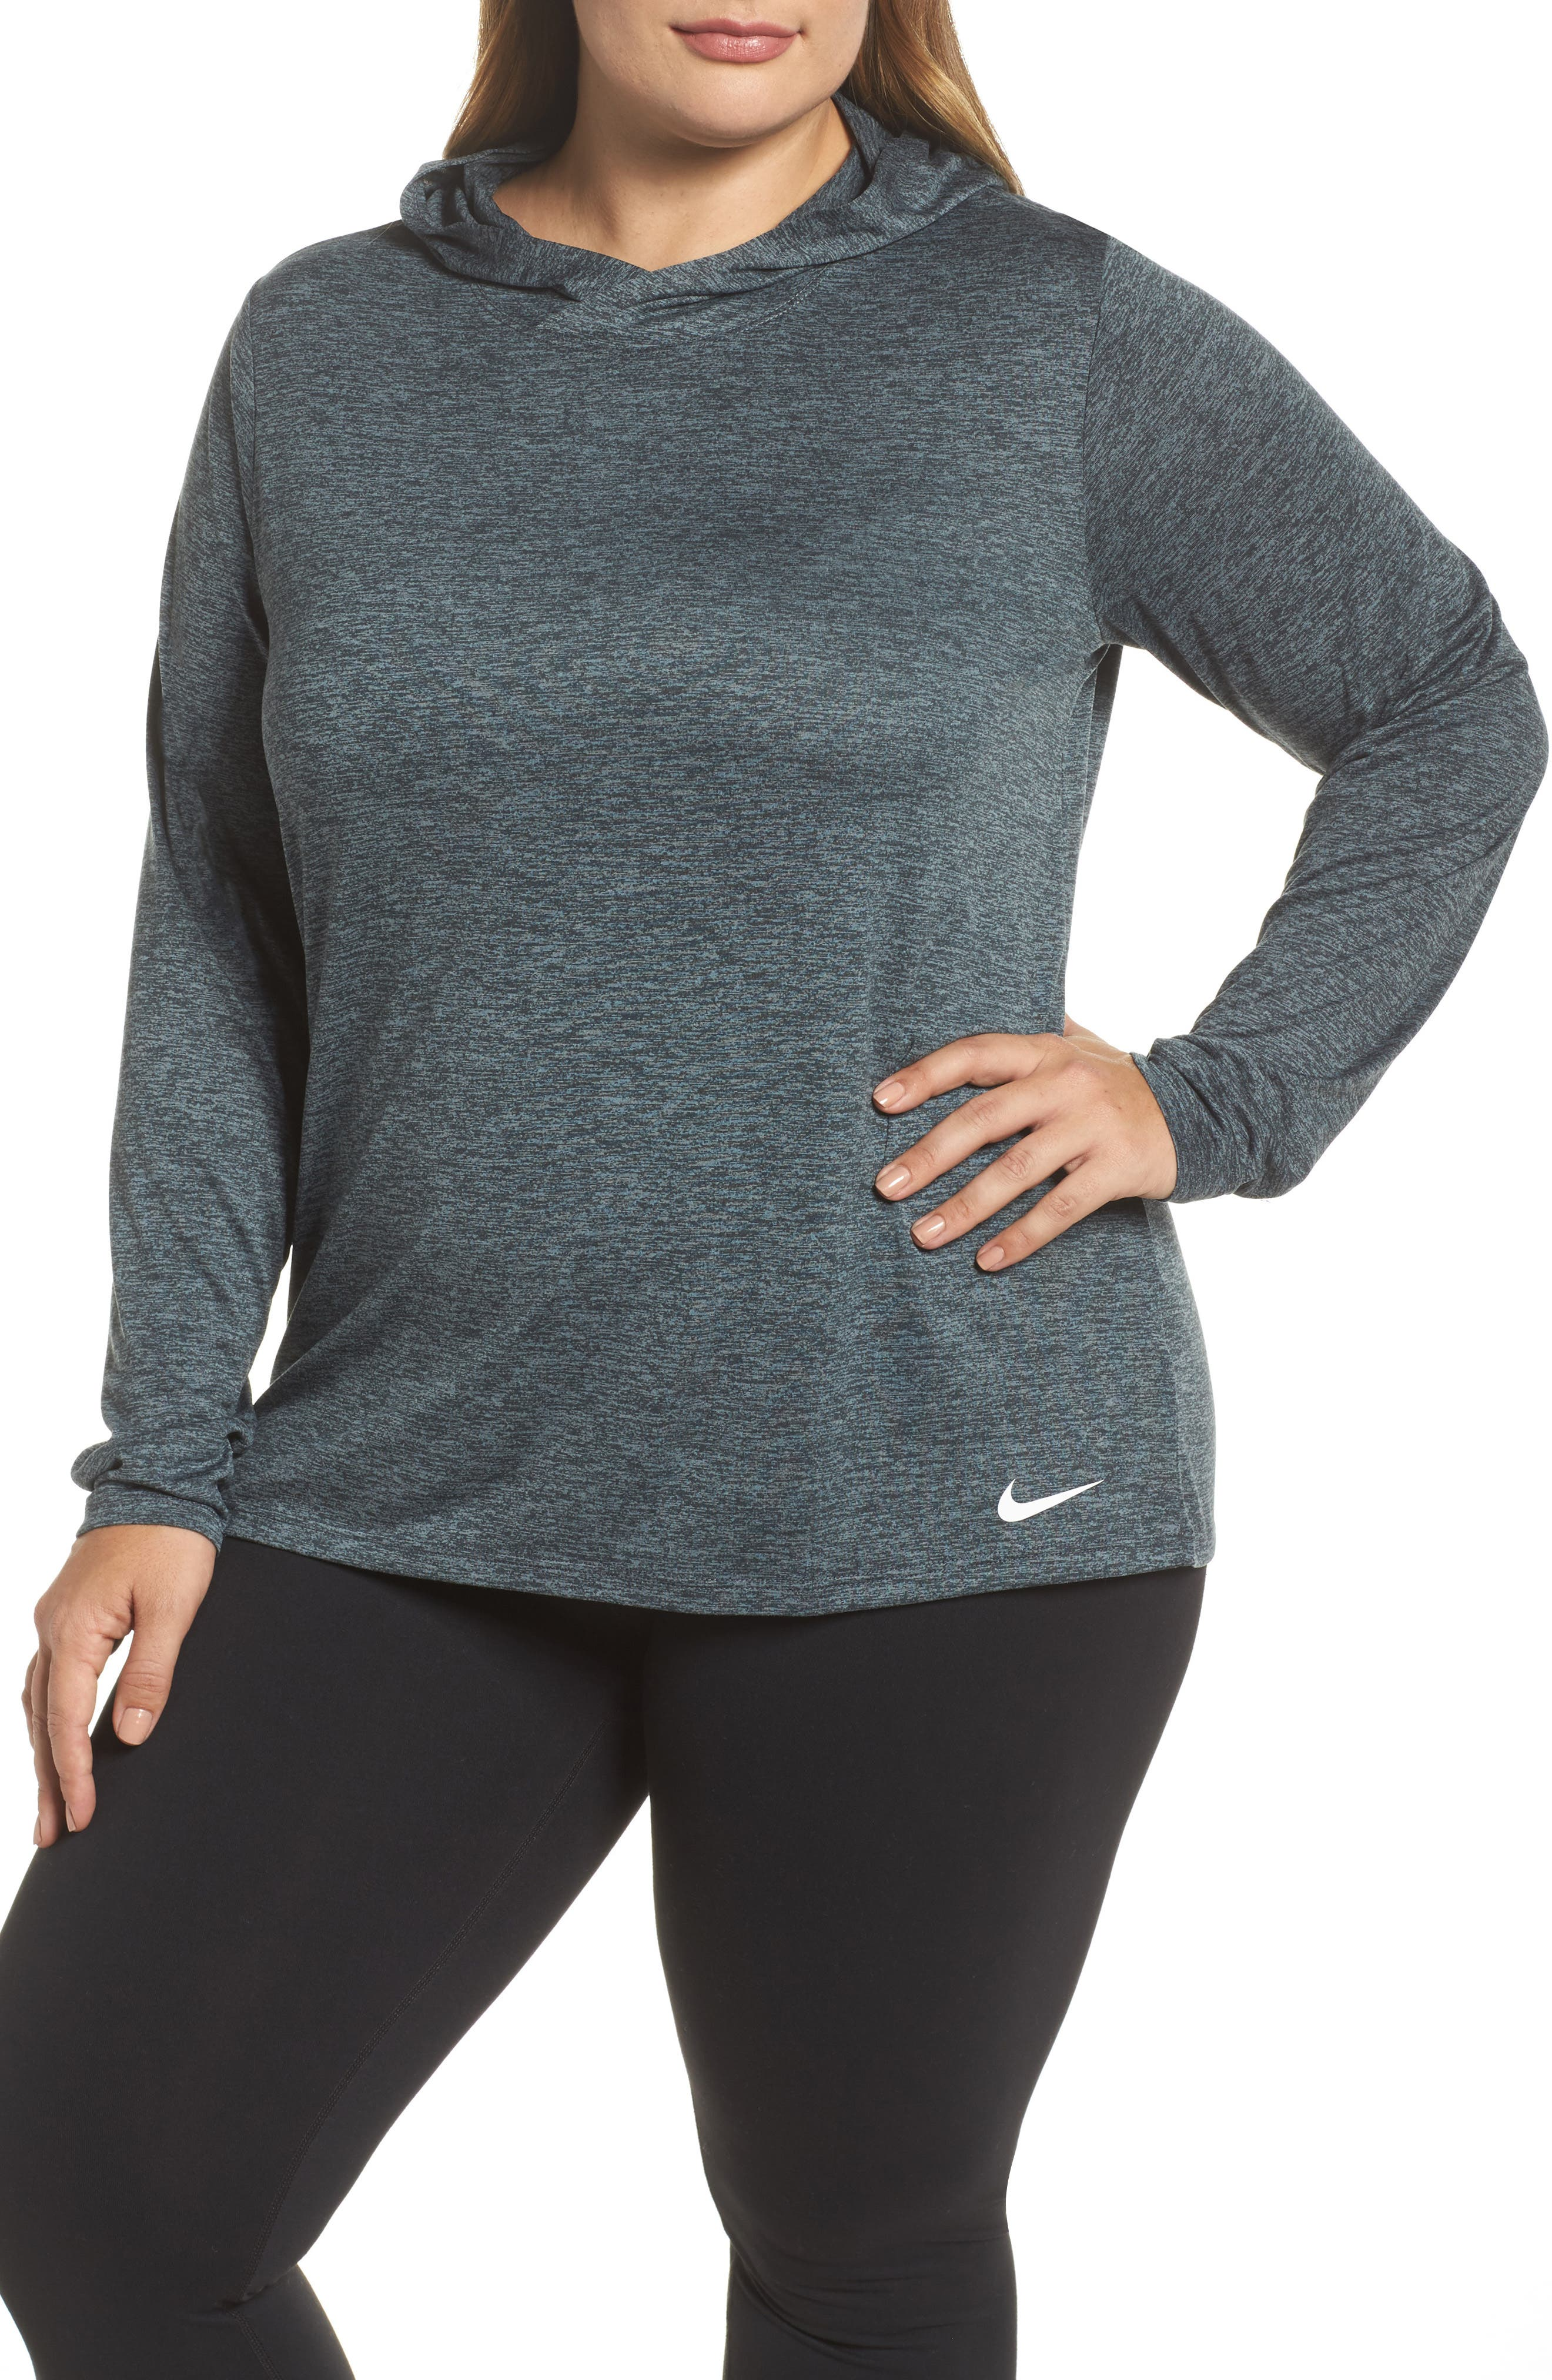 Dry Training Hoodie,                         Main,                         color, Black/ Cool Grey/ White